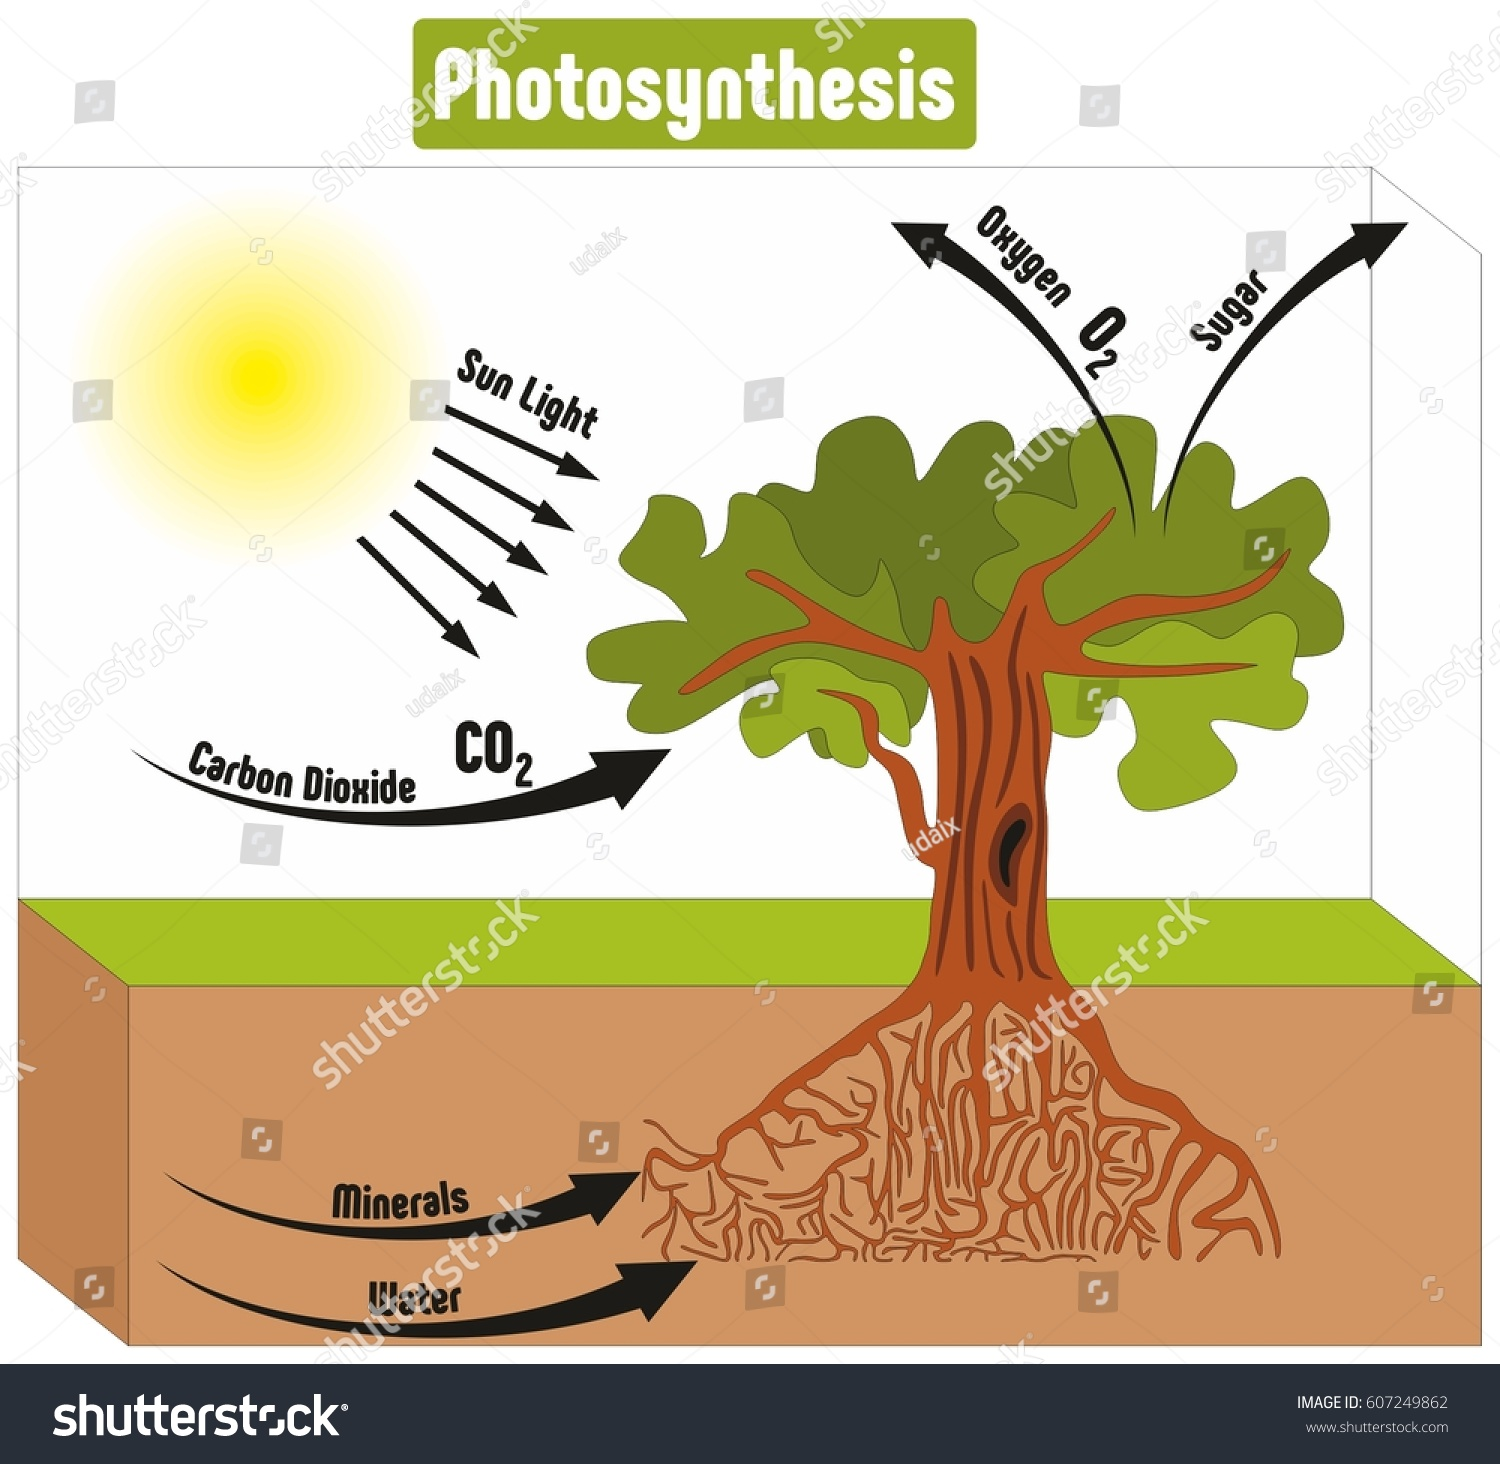 an analysis of the topic of the photosynthesis process in the plant world Rubisco is the most abundant protein in the world  of photosynthesis research within plant science is that it was range of topics in photosynthesis.